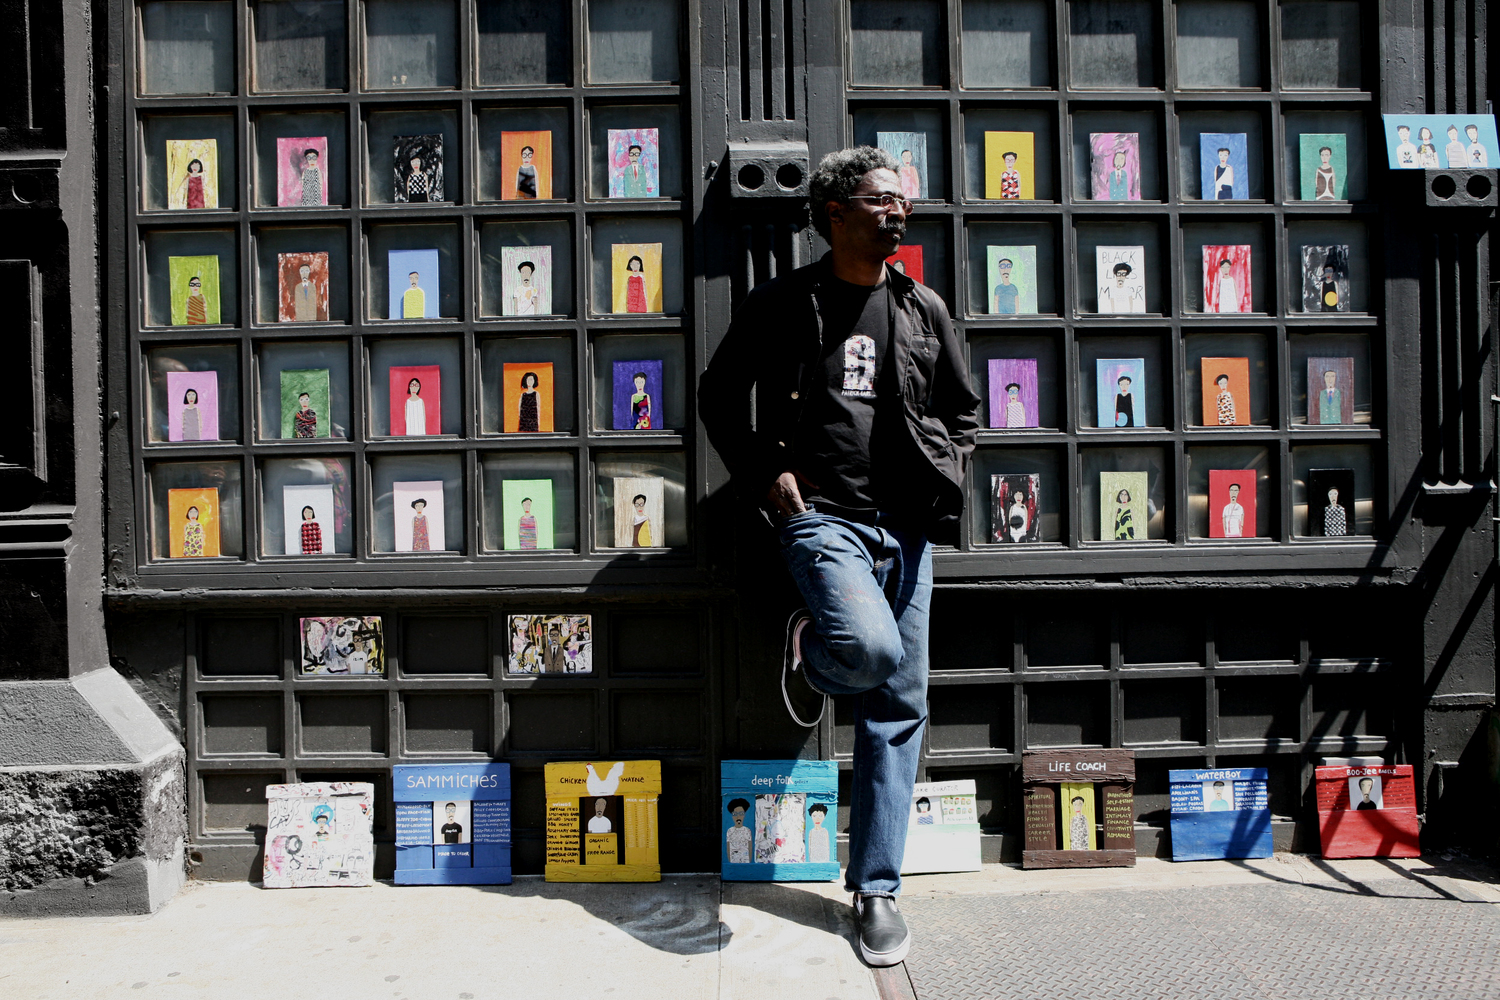 Patrick-Earl Barnes and his Art of Fashion Folk on Broome Street in New York City.